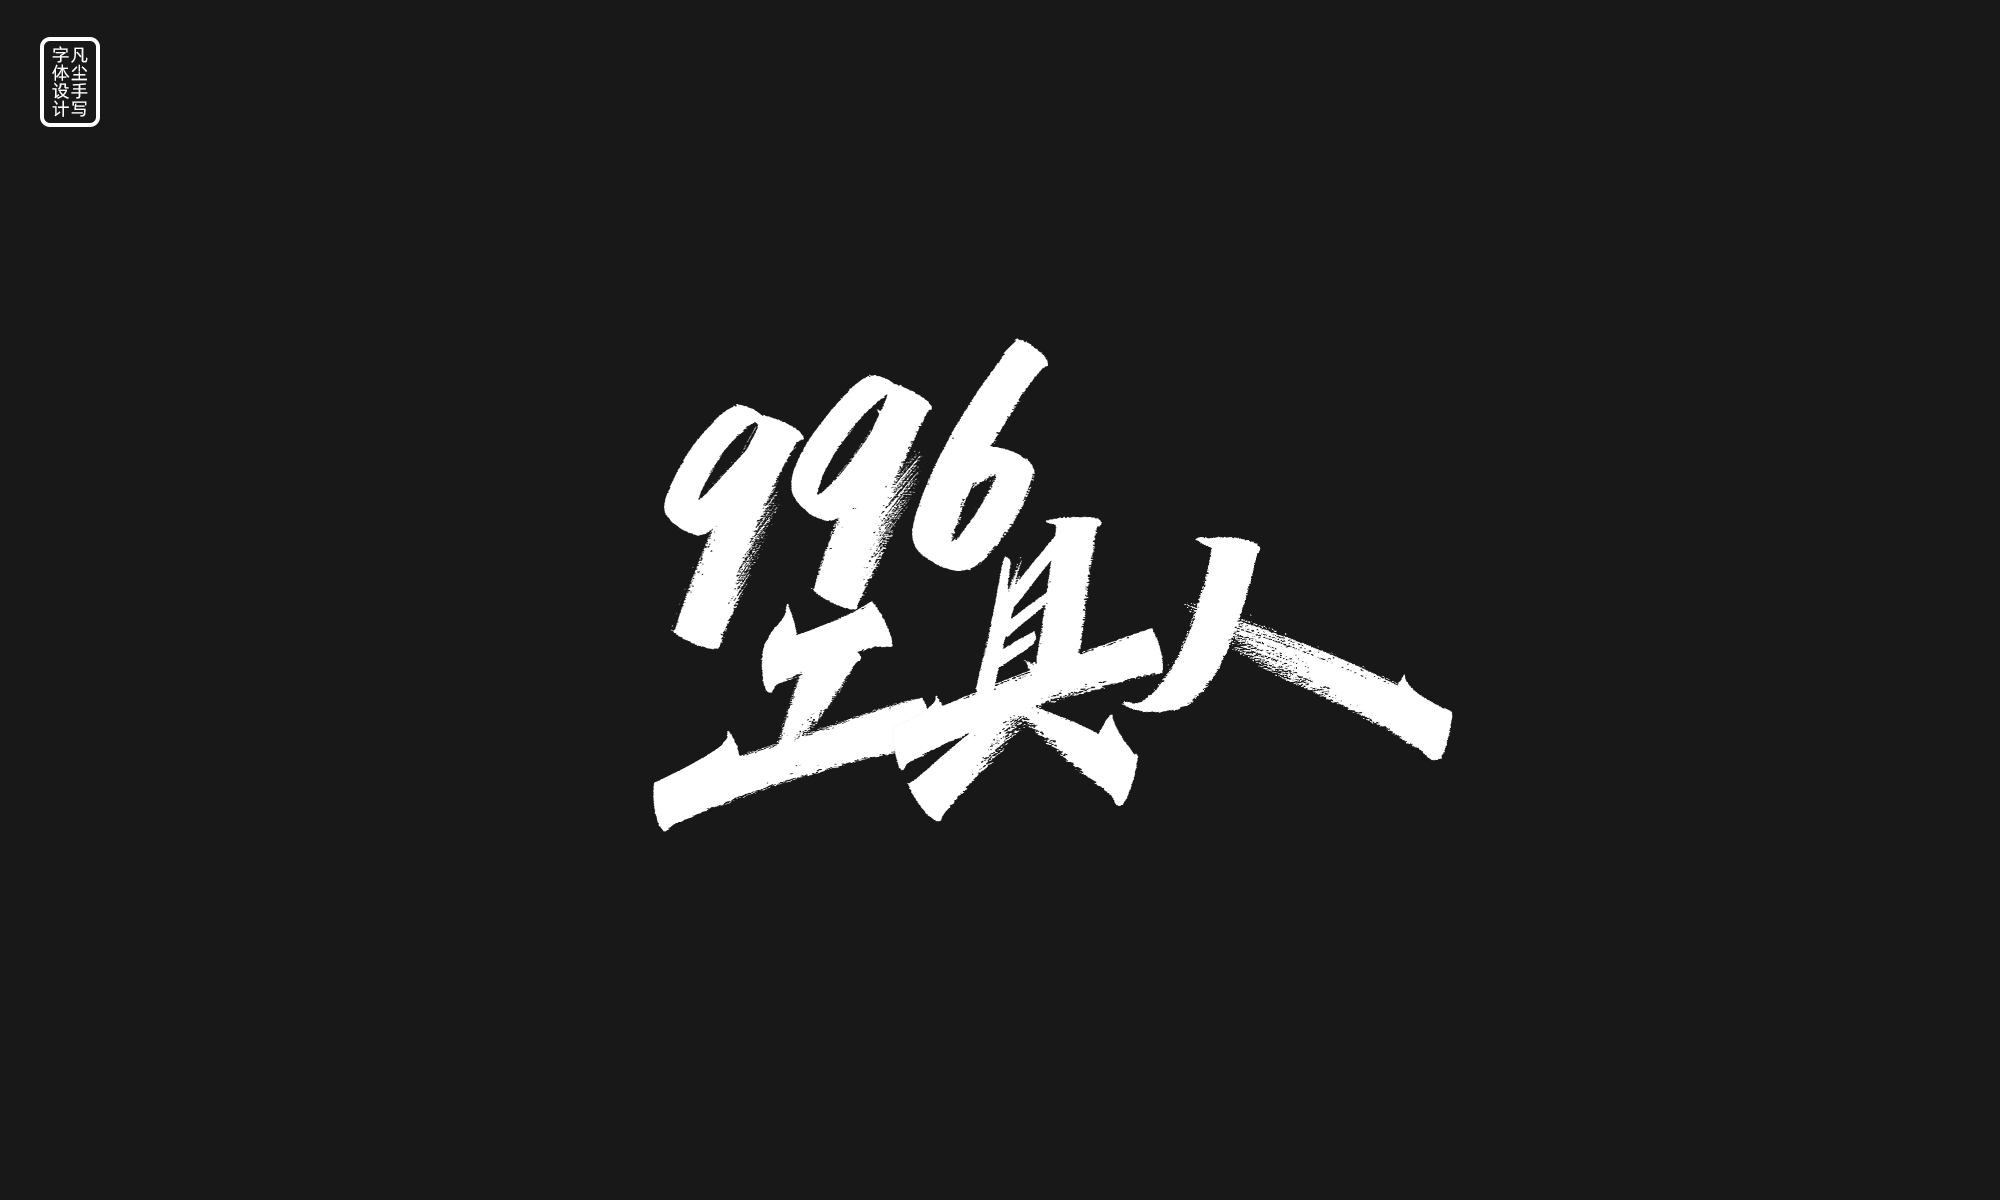 13P Collection of the latest Chinese font design schemes in 2021 #.43